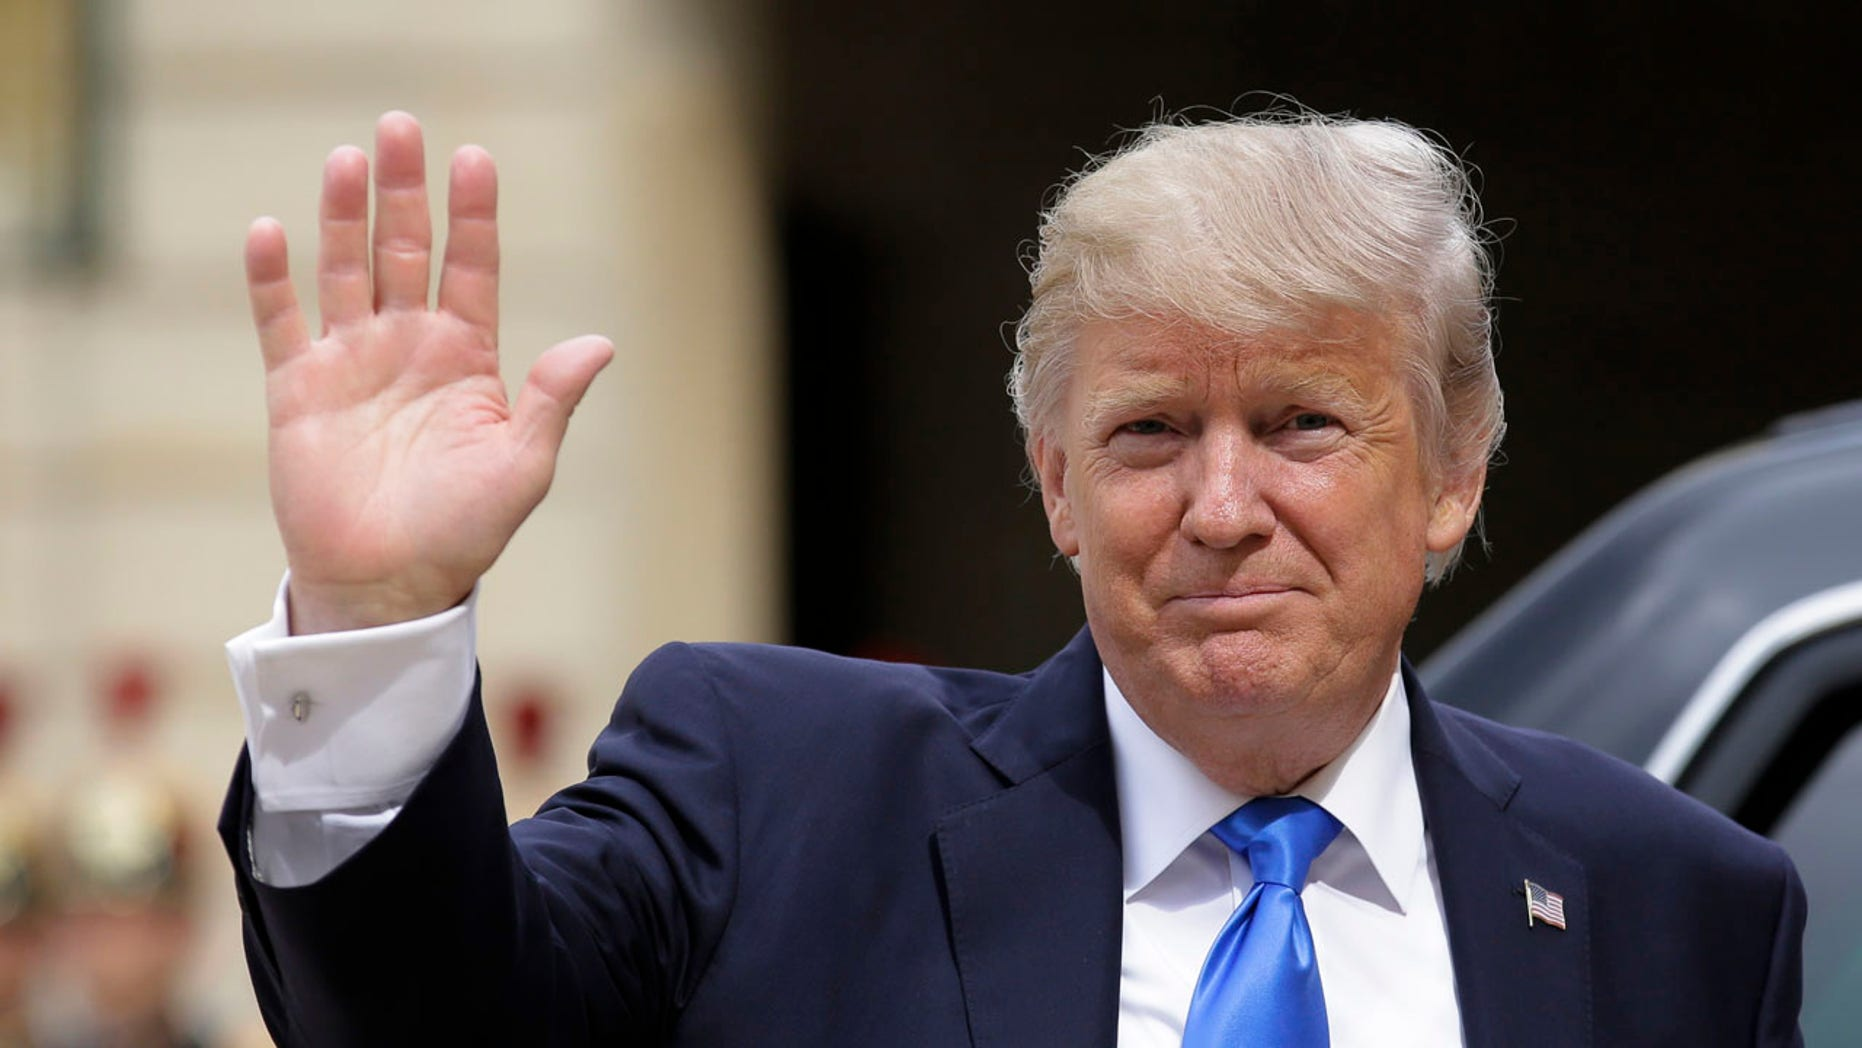 US President Donald Trump waves as he arrives for a meeting with French President Emmanuel Macron at the Elysee Palace in Paris, Thursday, July 13, 2017.